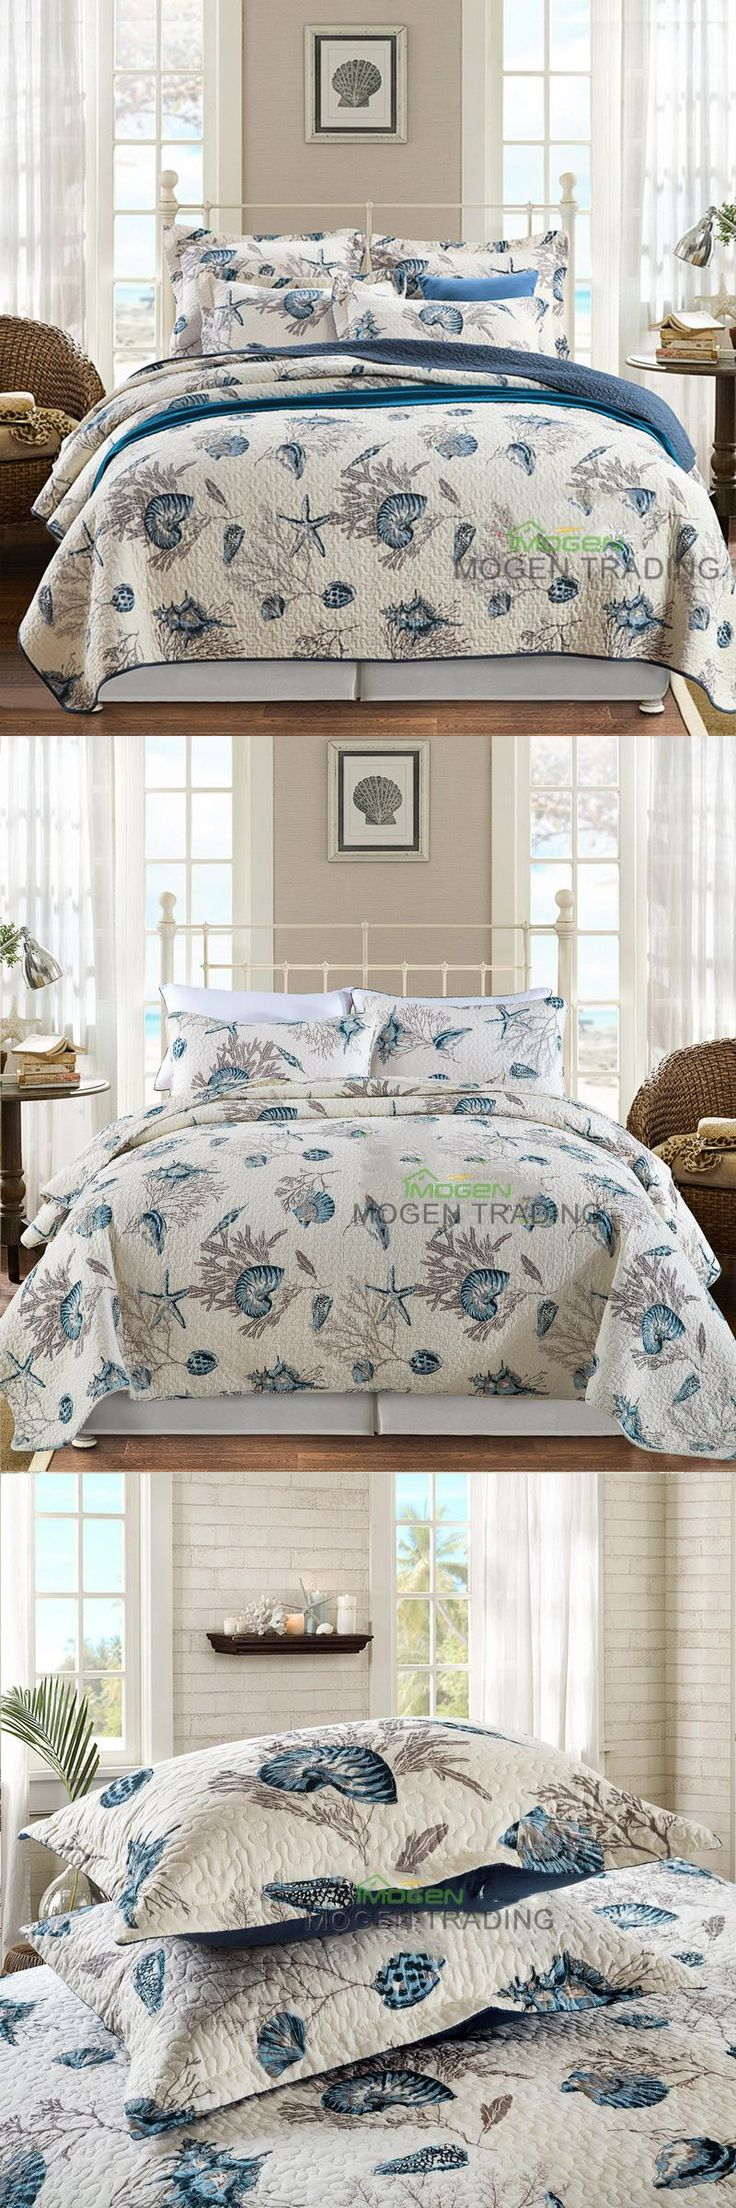 206 best home textile images on pinterest home textile blankets